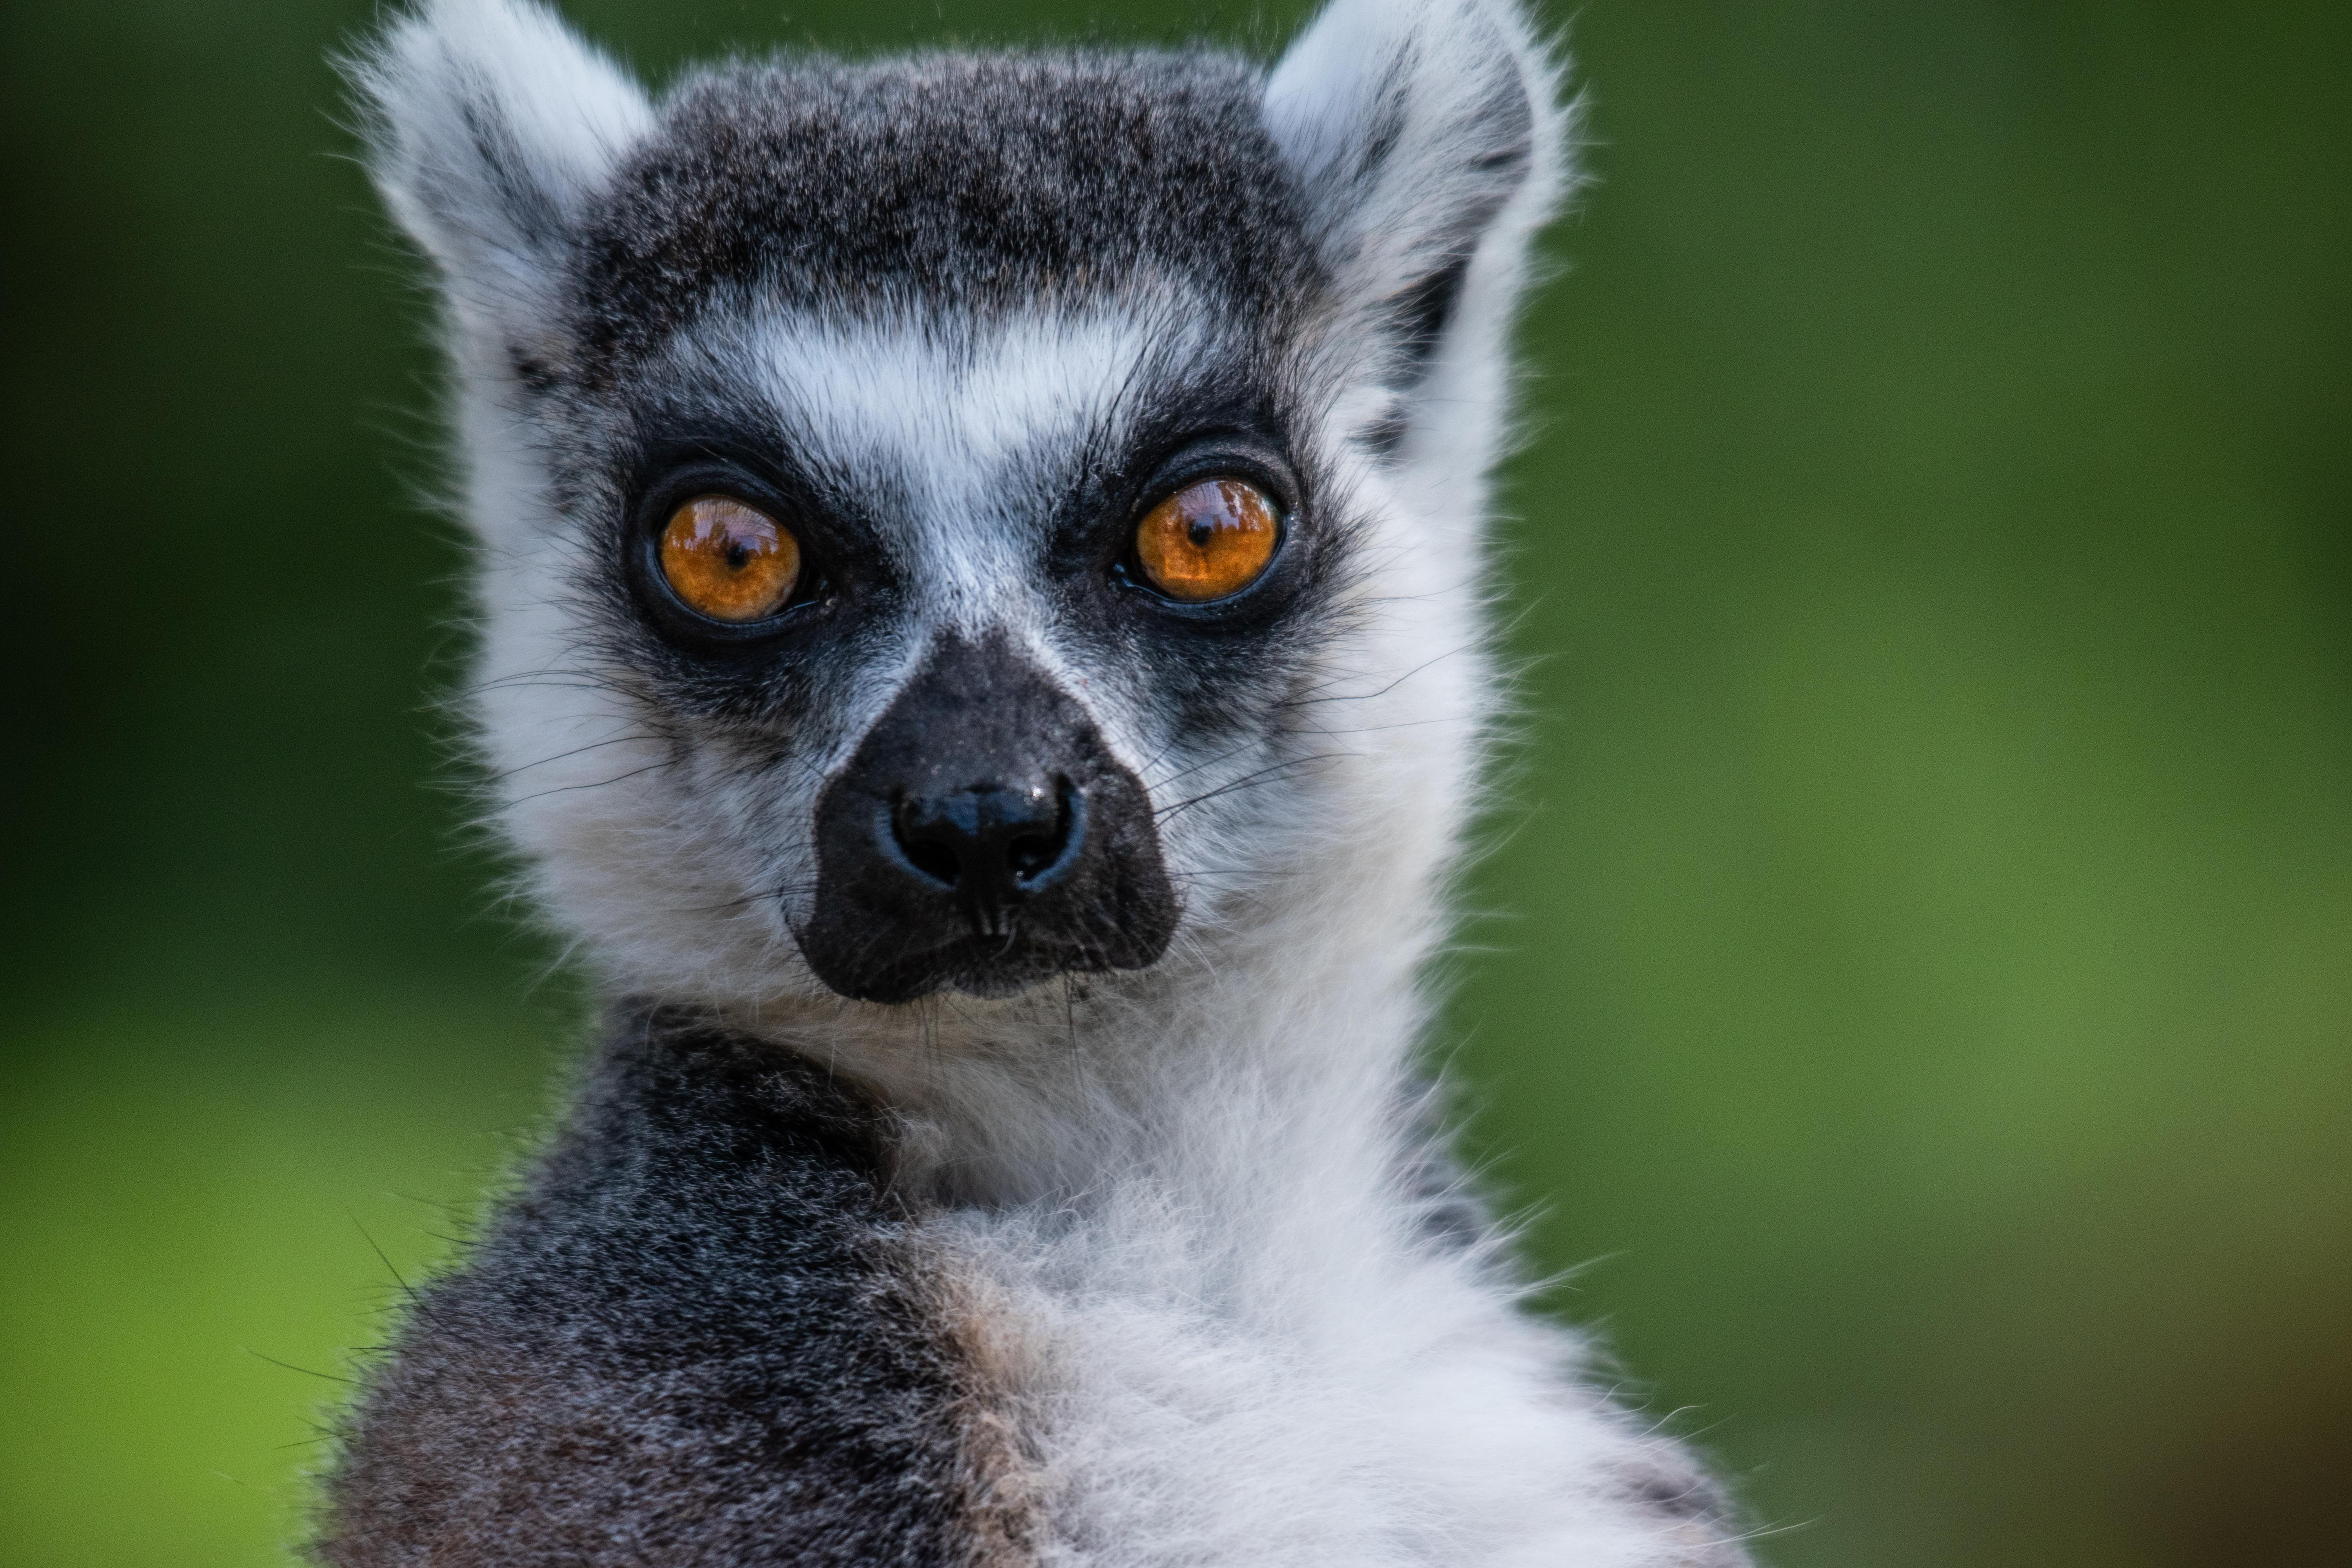 A lemur and its beautiful big eyes